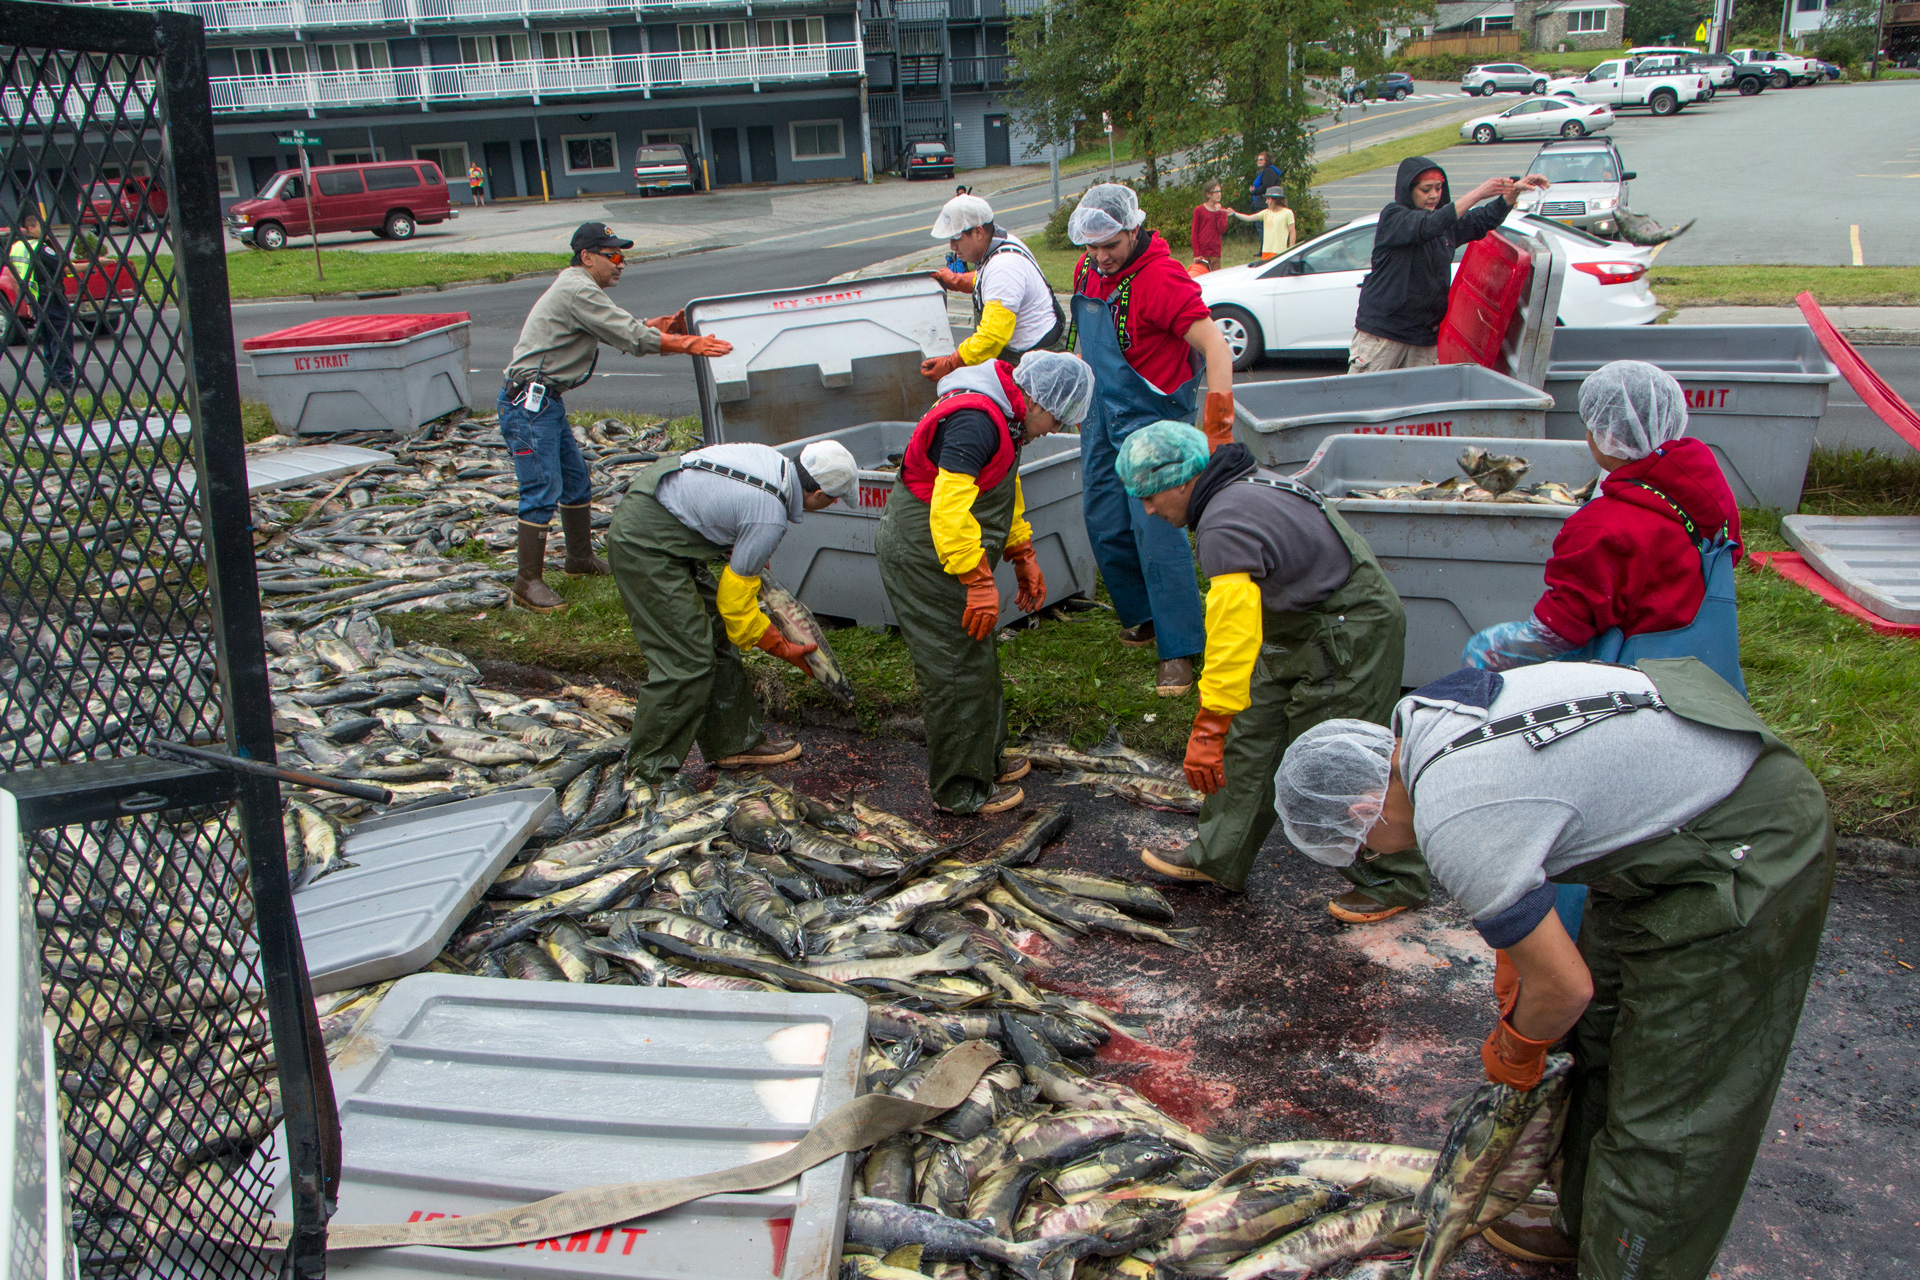 Crews load salmon back into fish totes after a tuck rollover on Egan Drive on July 25th, 2016. (Photo by Mikko Wilson / KTOO)